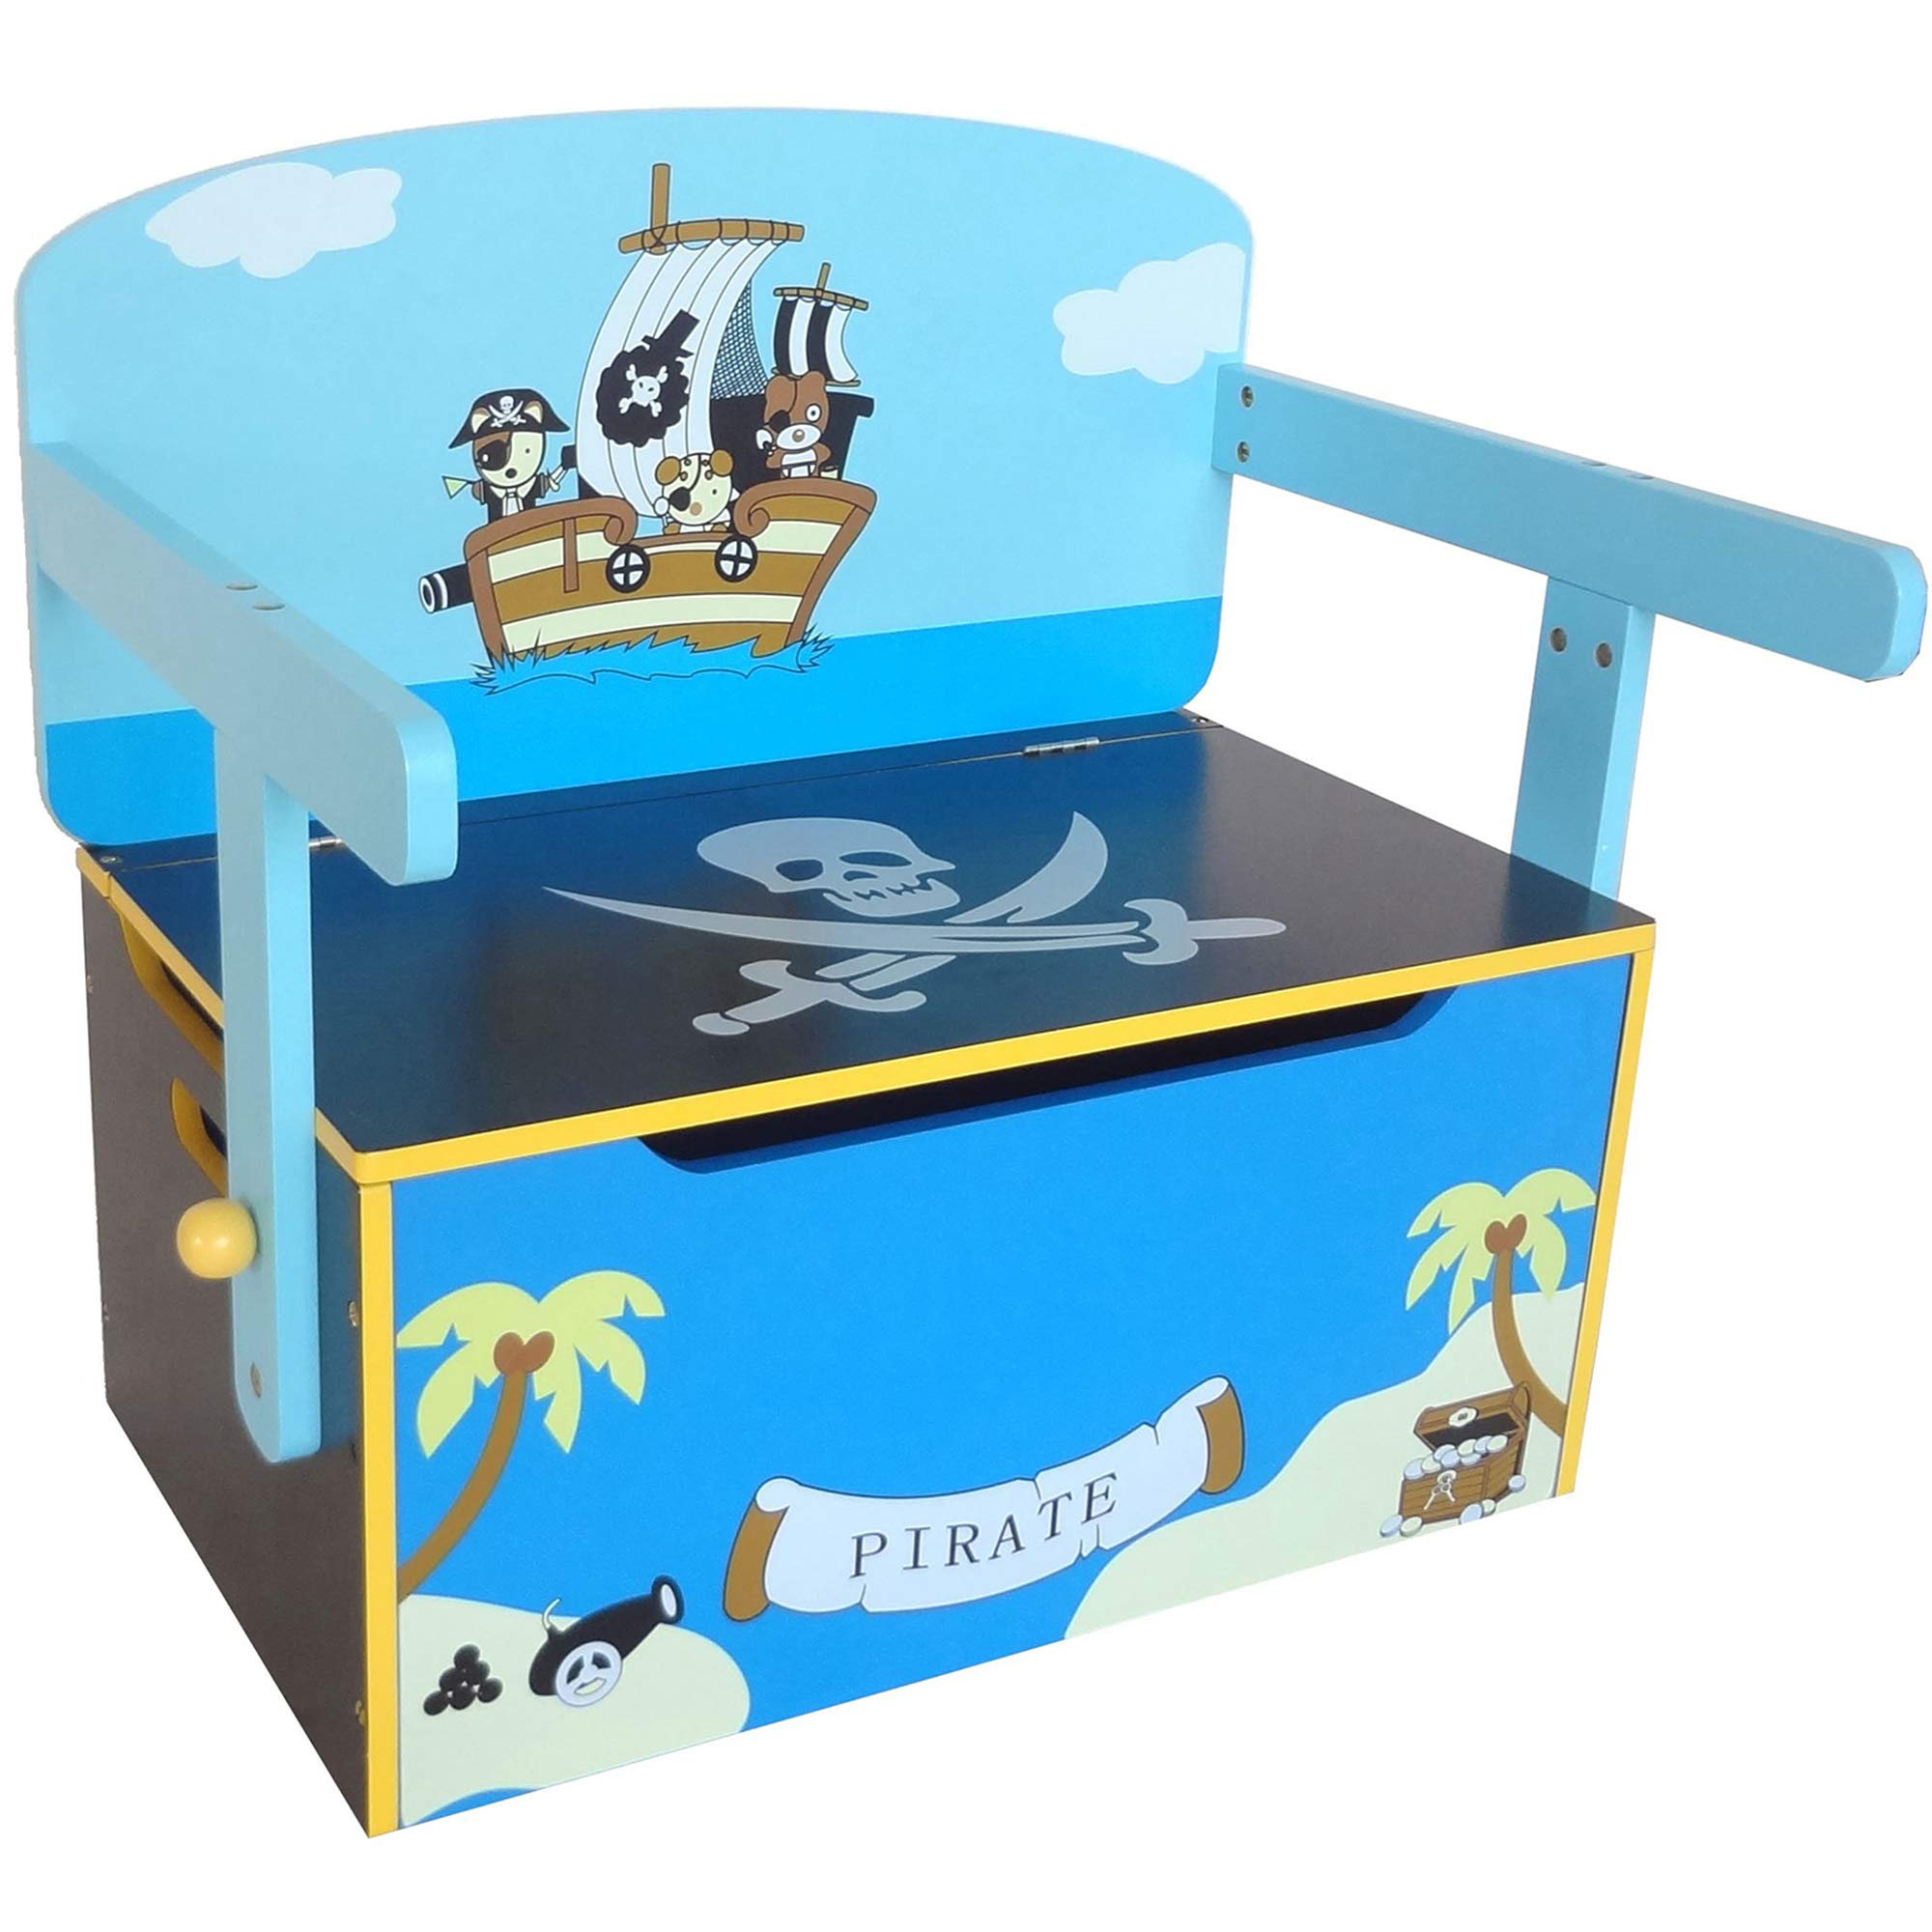 Bebe Style Toddler Sized Premium Wooden Convertable 3 in 1 Bench Desk and Table Pirate Theme Easy Assmebly Blue